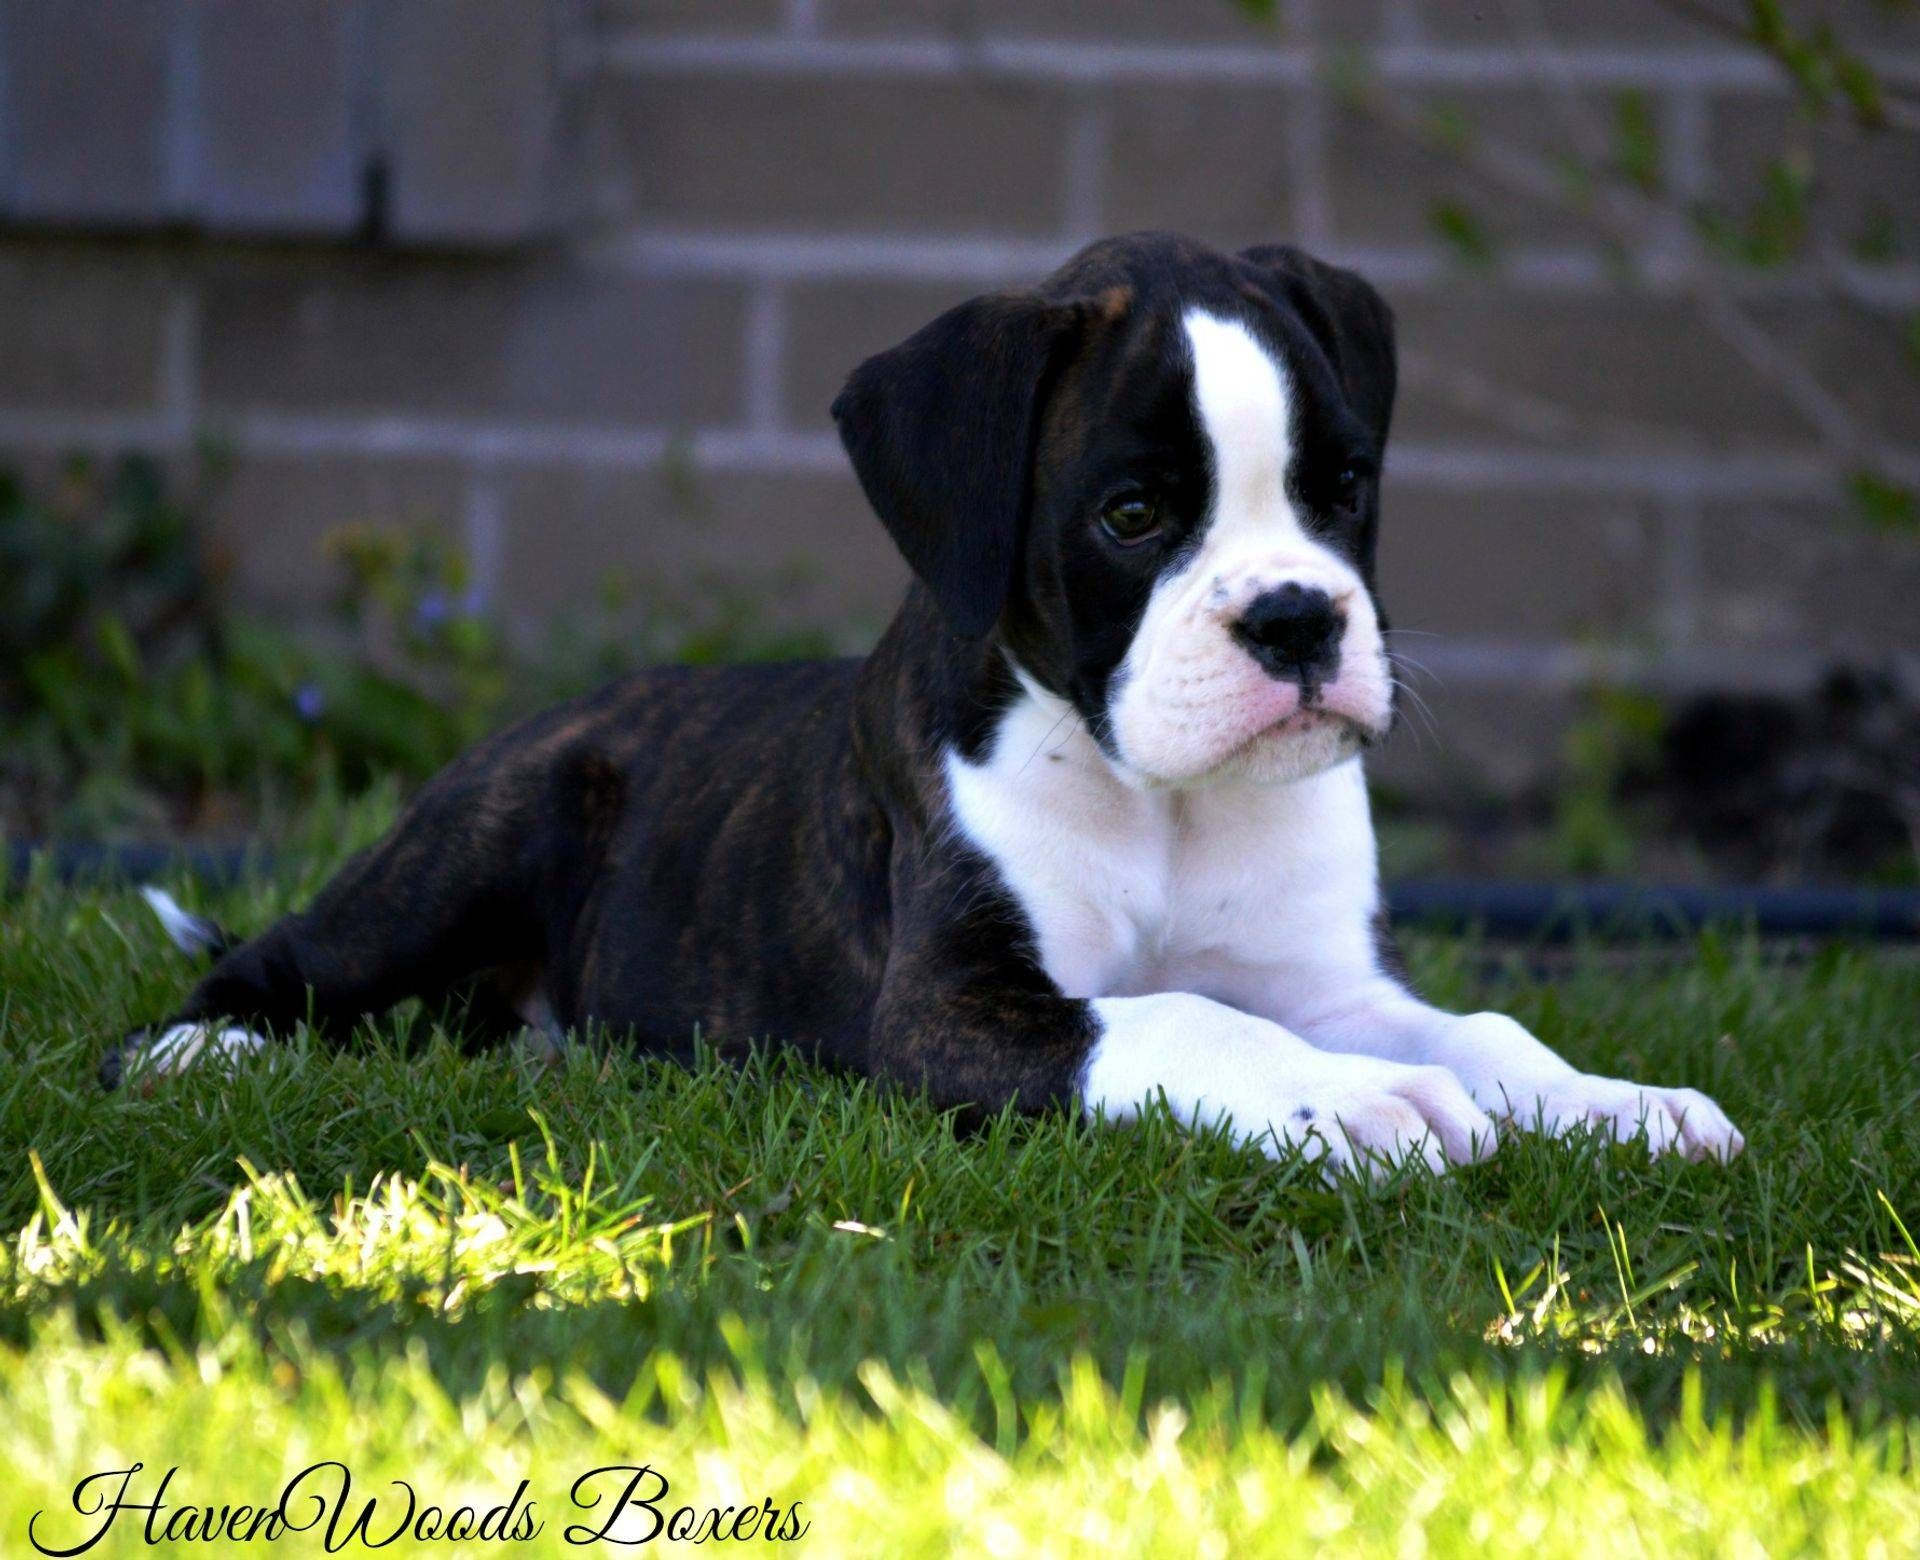 Fawn Brindle Boxer Puppies Available Boxer Puppies For Sale European Boxers German Boxers Dogs German Puppies Boxer Atigrado Perros Boxer Cachorros Boxer